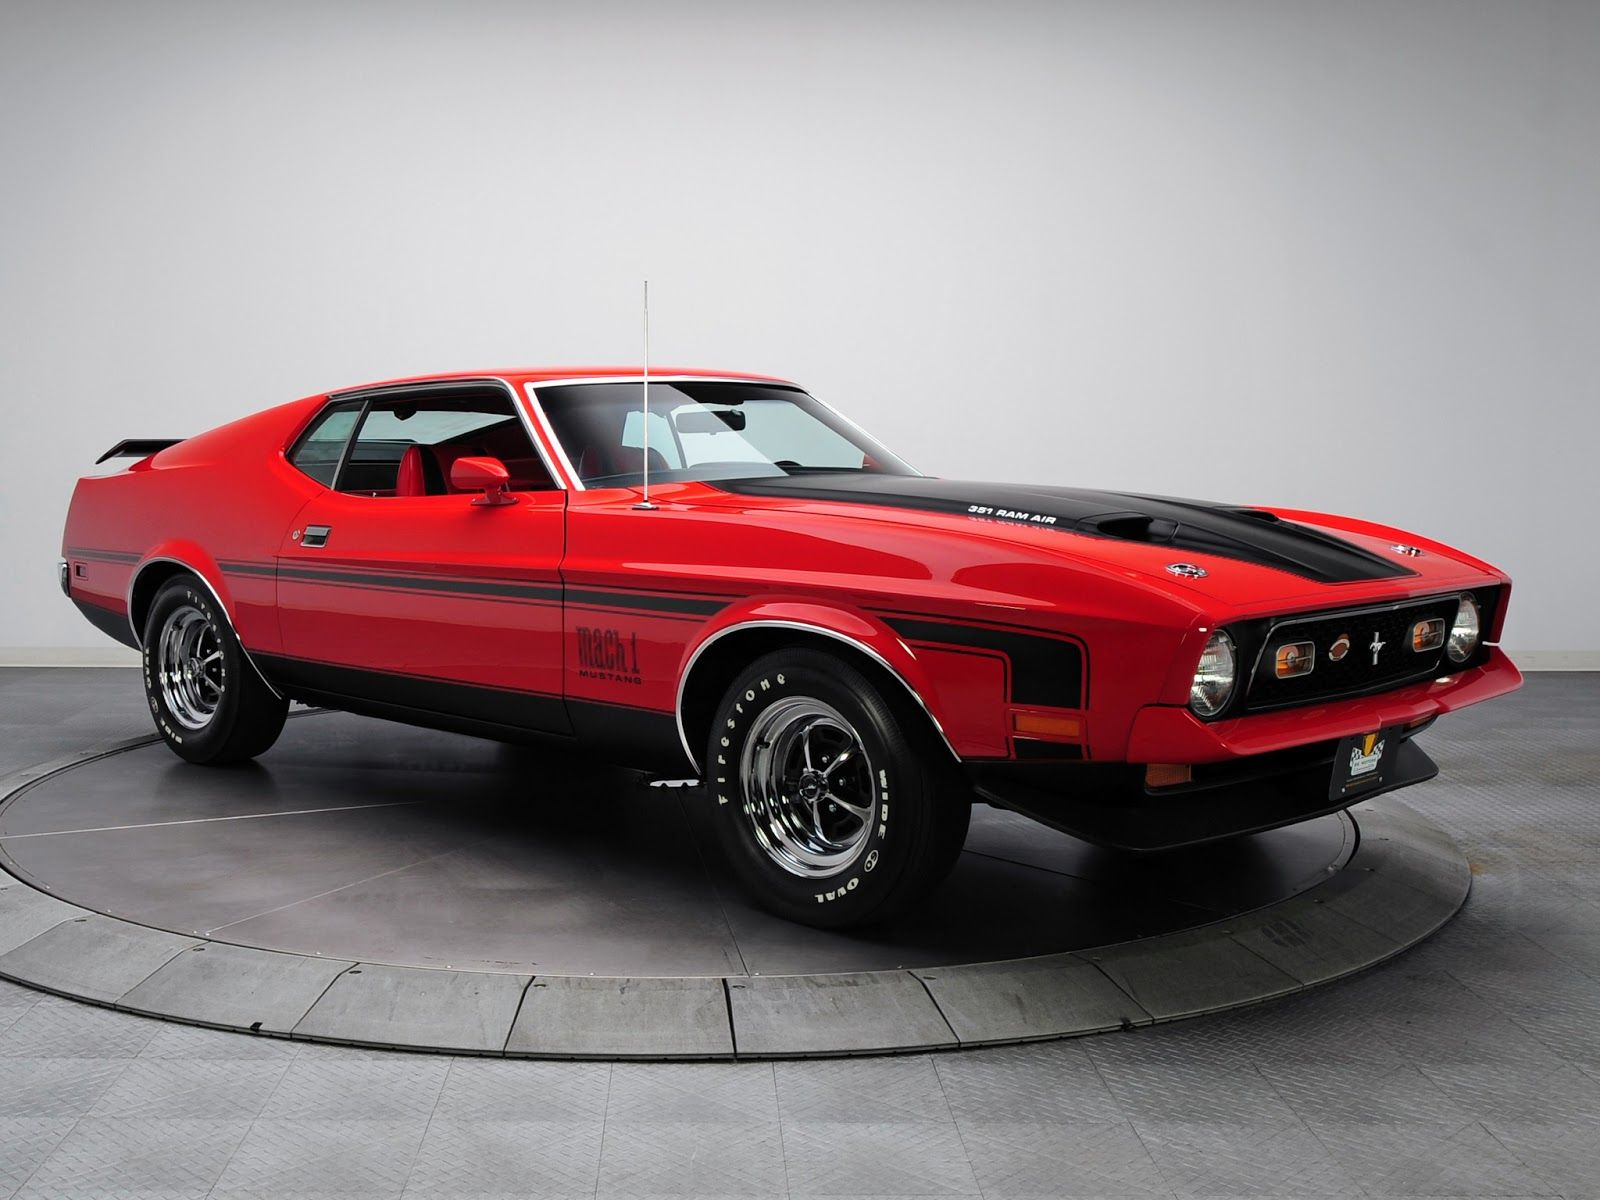 1971 Ford Mustang Mach 1 Fastback Diamonds Are Forever Ford Mustang Mach 1 2nd Gen 1971 73 Ford Mustang 1971 Ford Mustang Mustang Mach 1